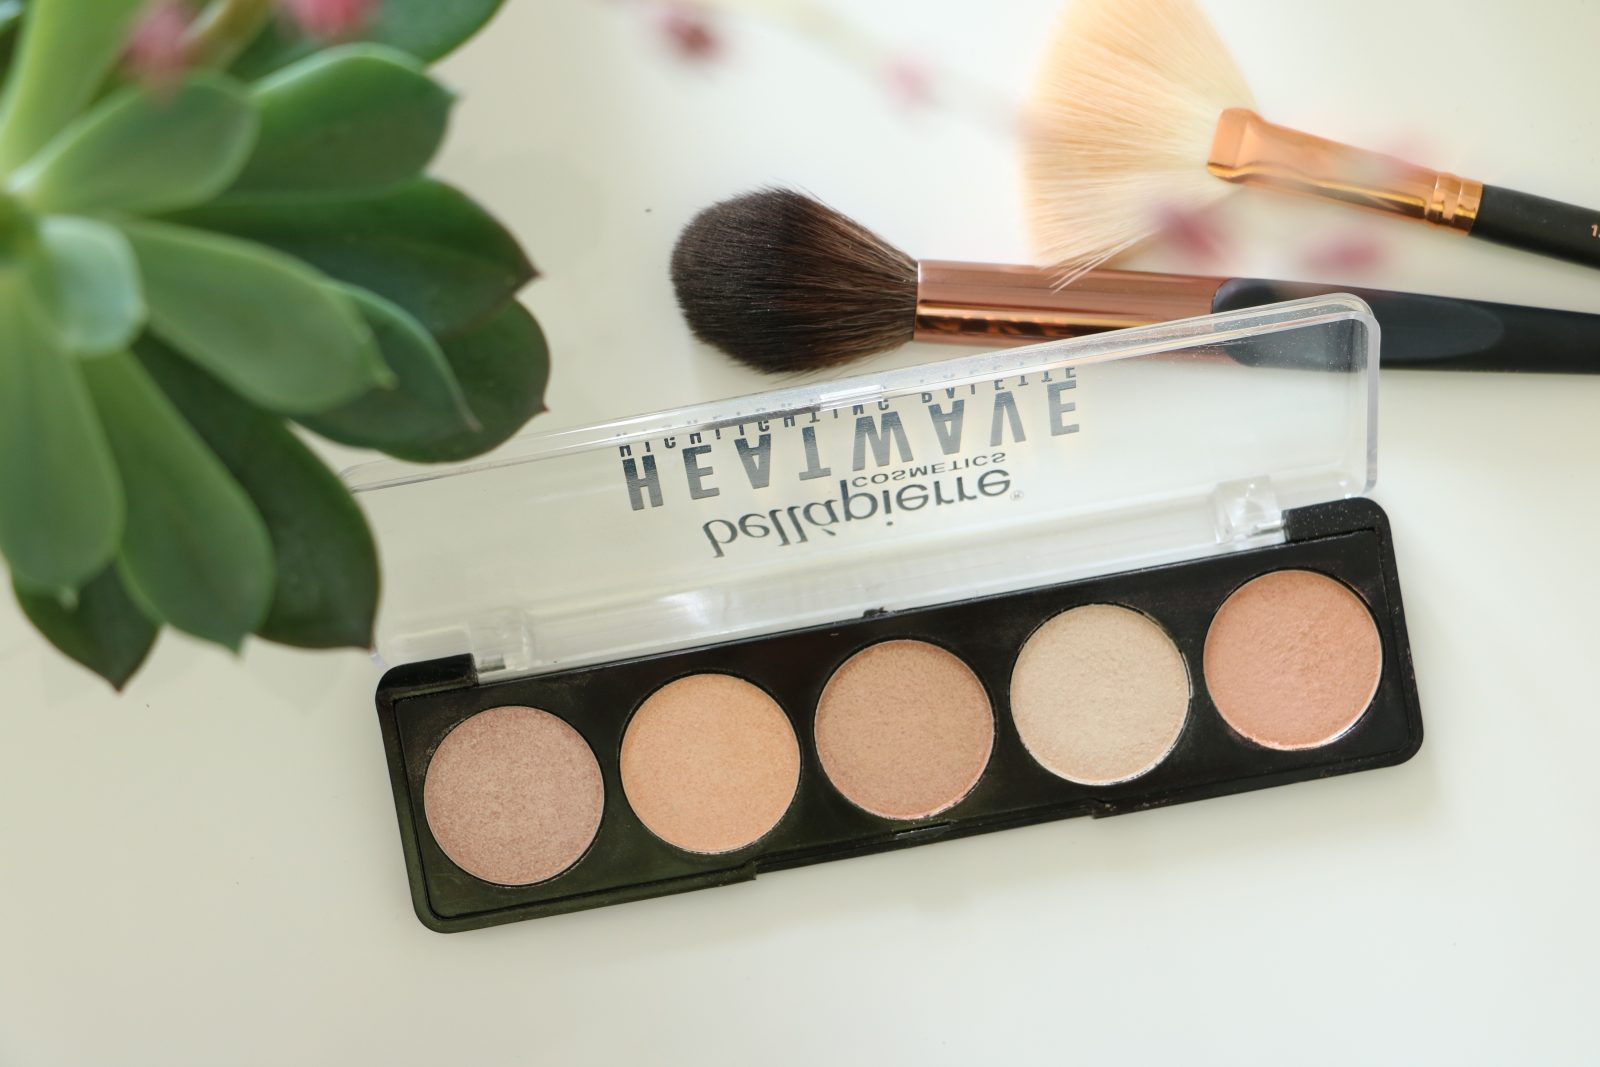 Bellapierre Heatwave Highlighting Palette Review